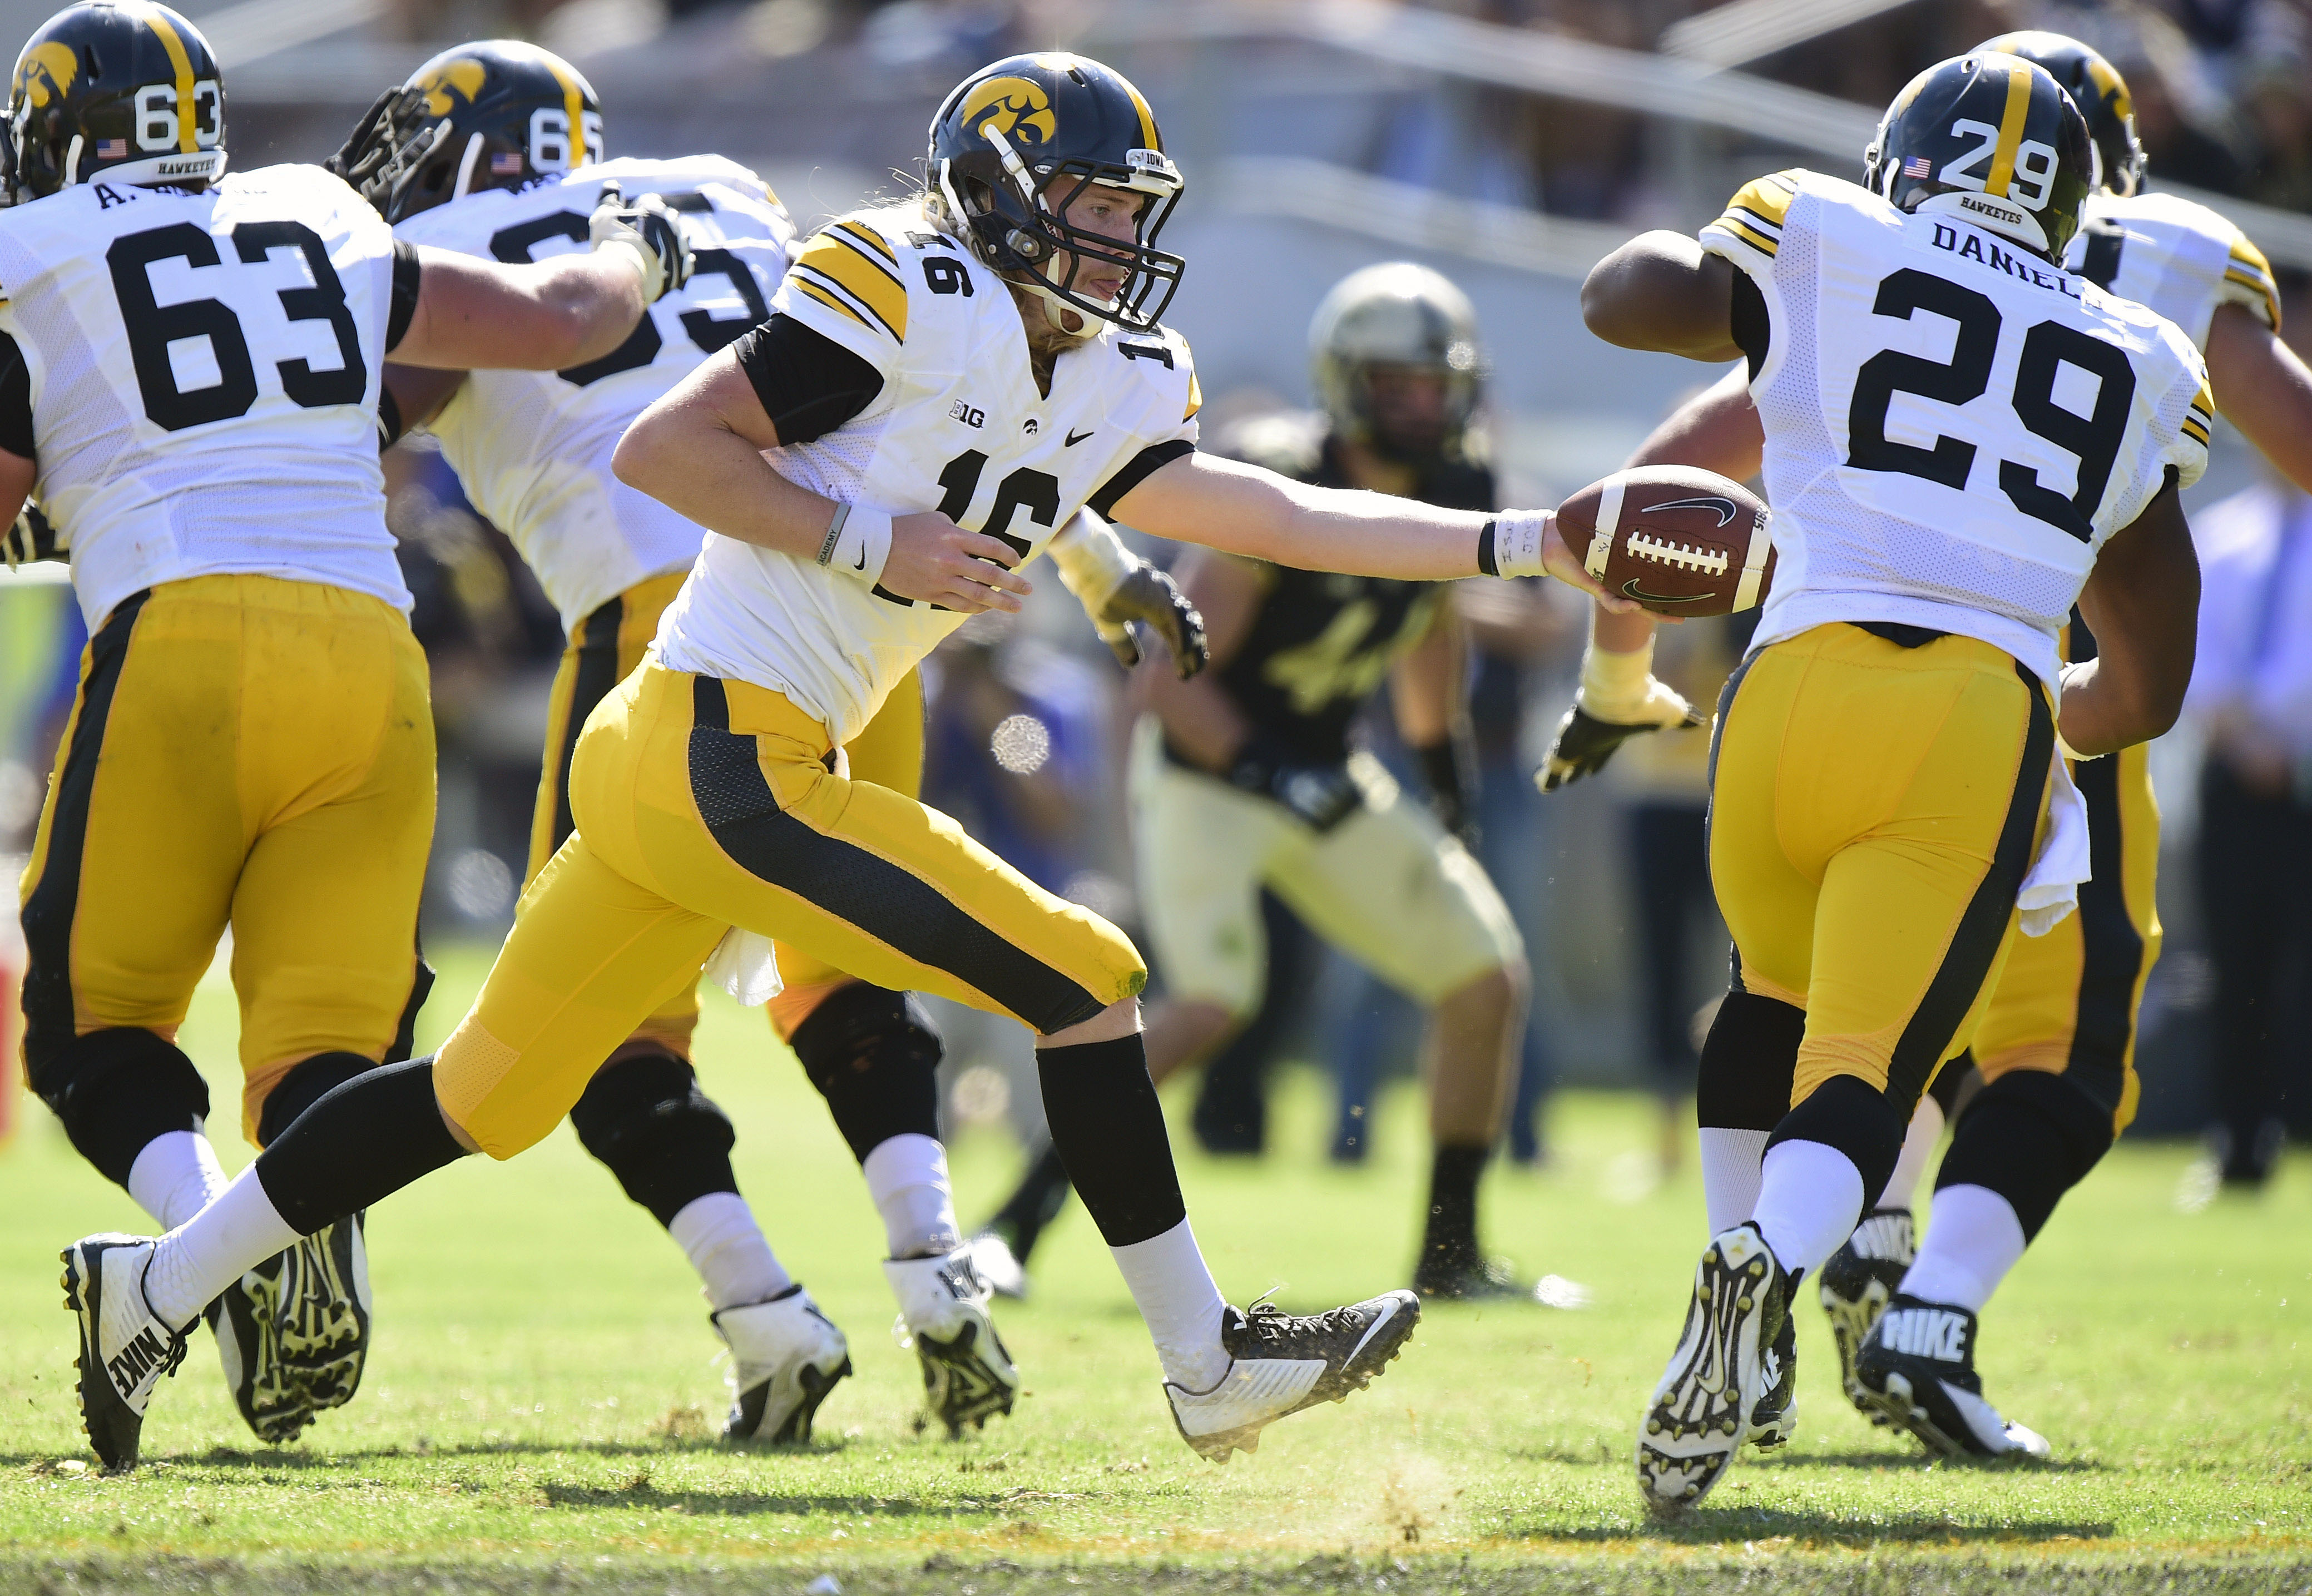 Beathard handing the ball off to Daniels -- there's a sneak peek of your 2015 Iowa offense.